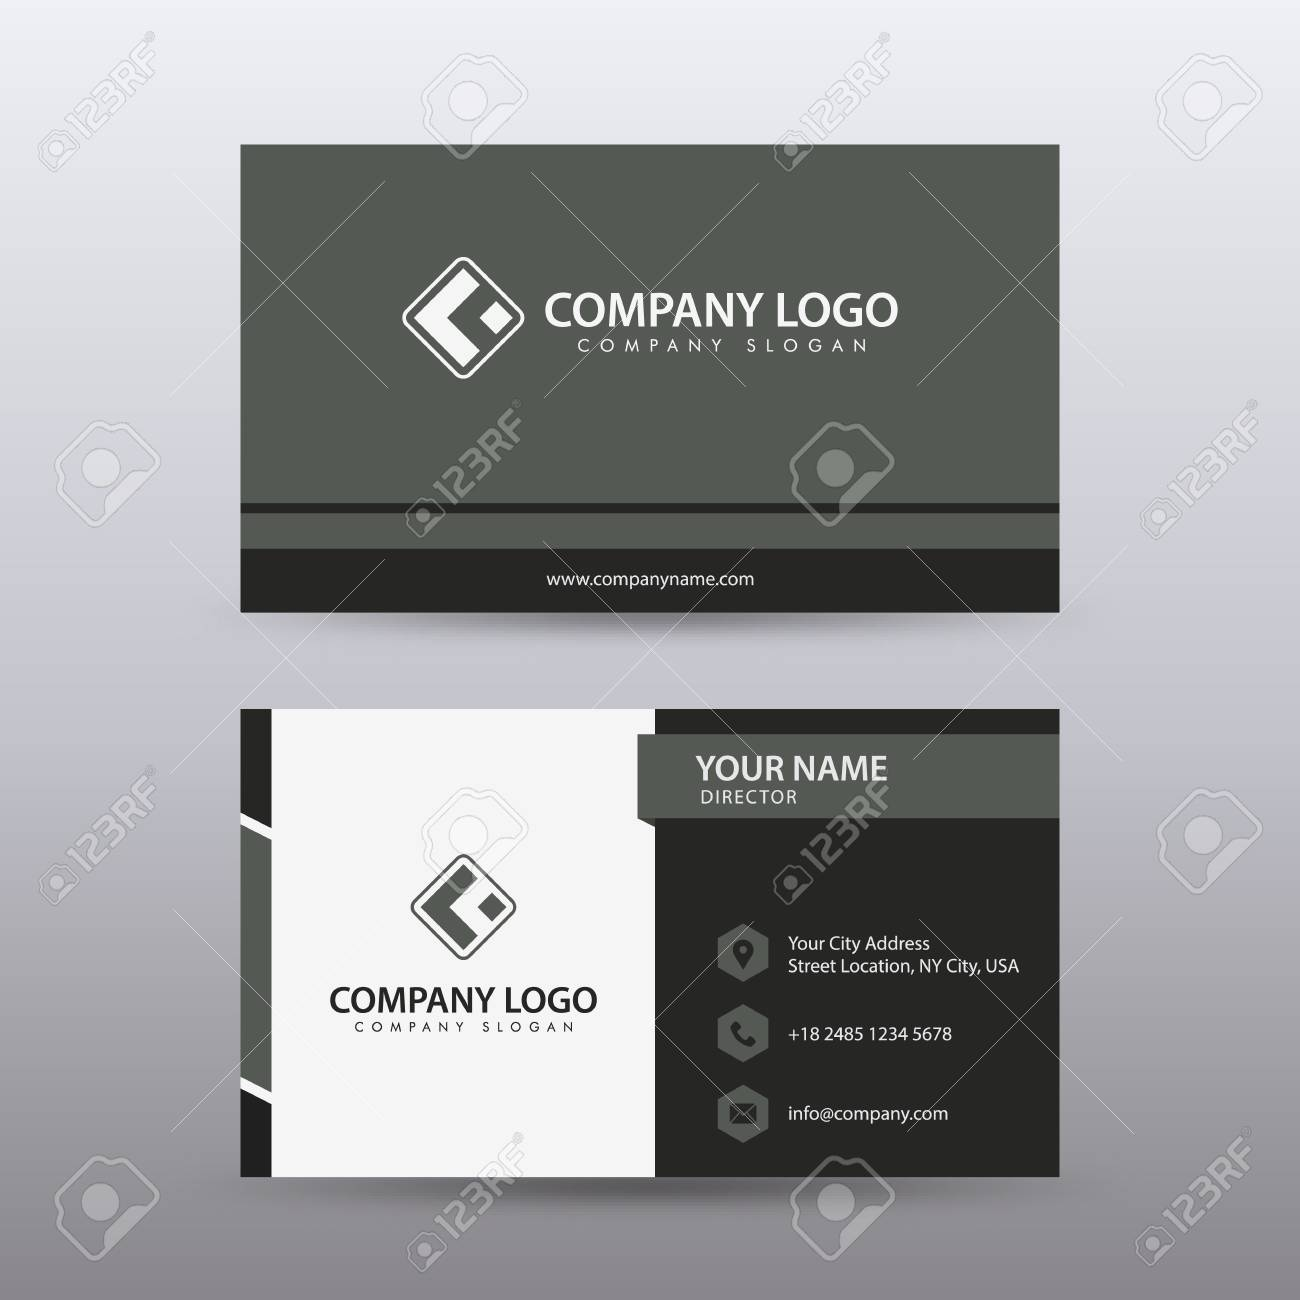 Modern Creative and Clean Business Card Template with Red Black color . Fully editable vector. - 94503965